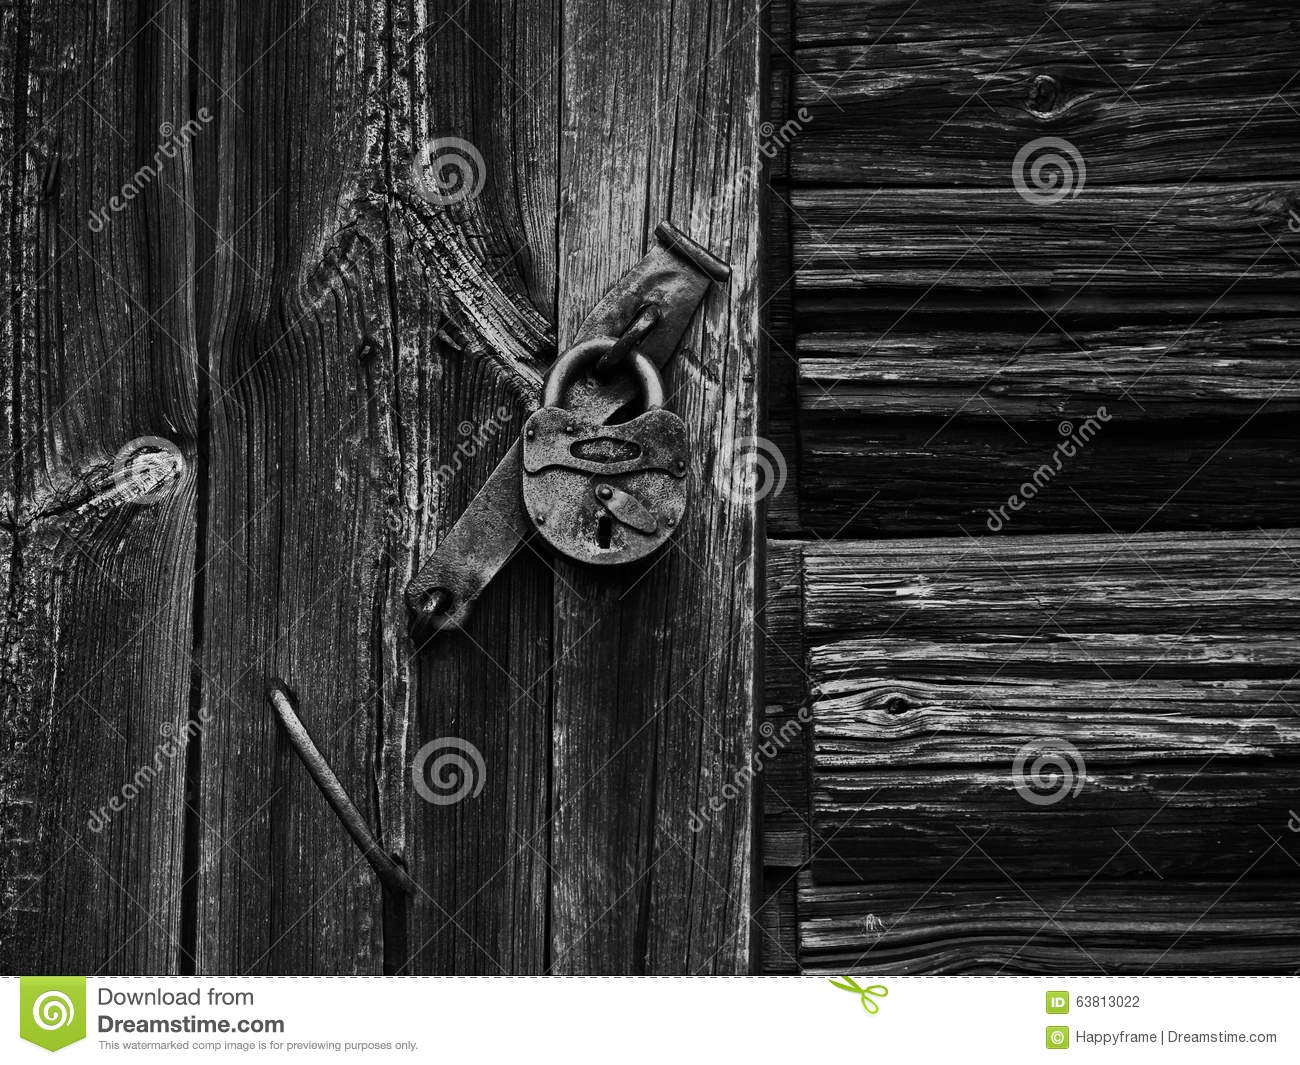 Lock on the rotten wooden wall